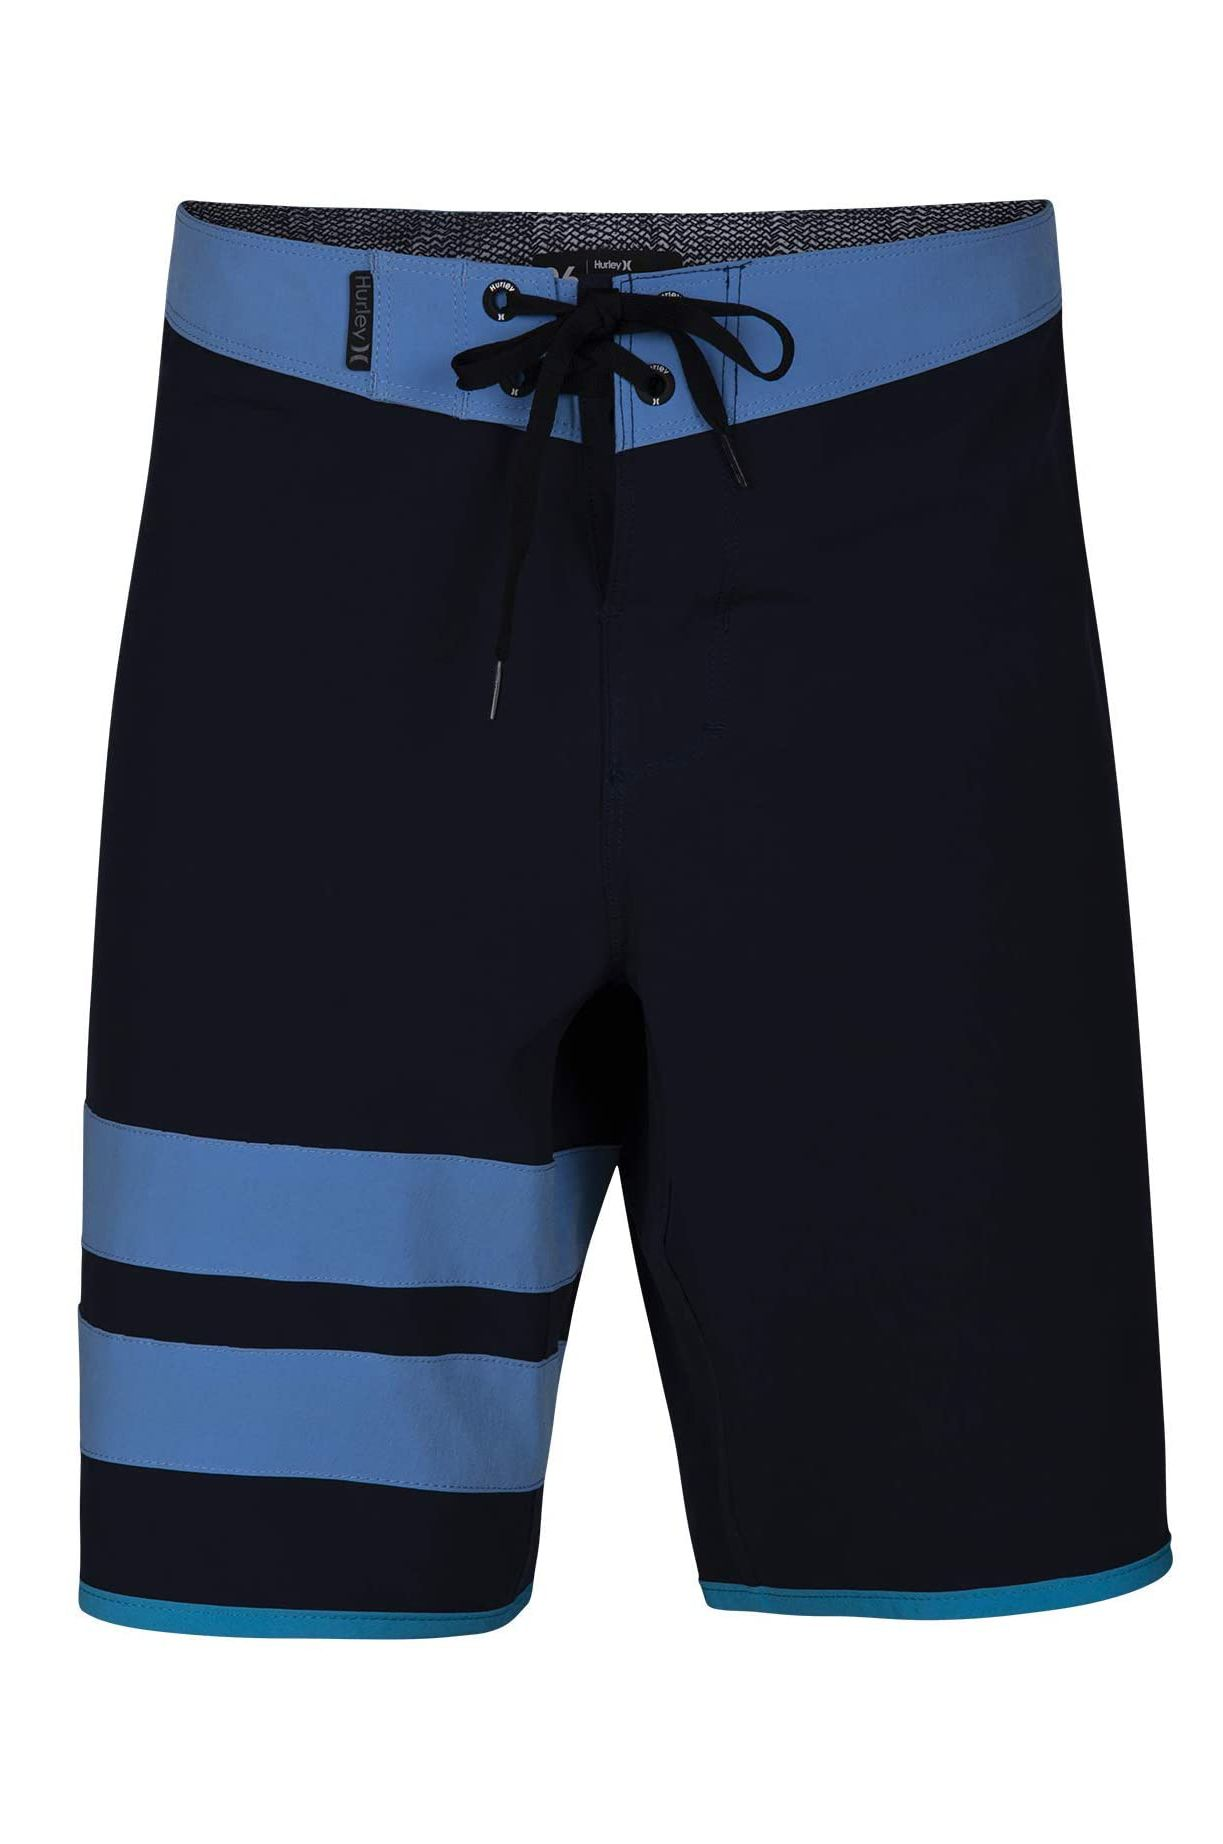 Boardshorts Hurley PHTM BLOCK PARTY SOLID 16' Obsidian